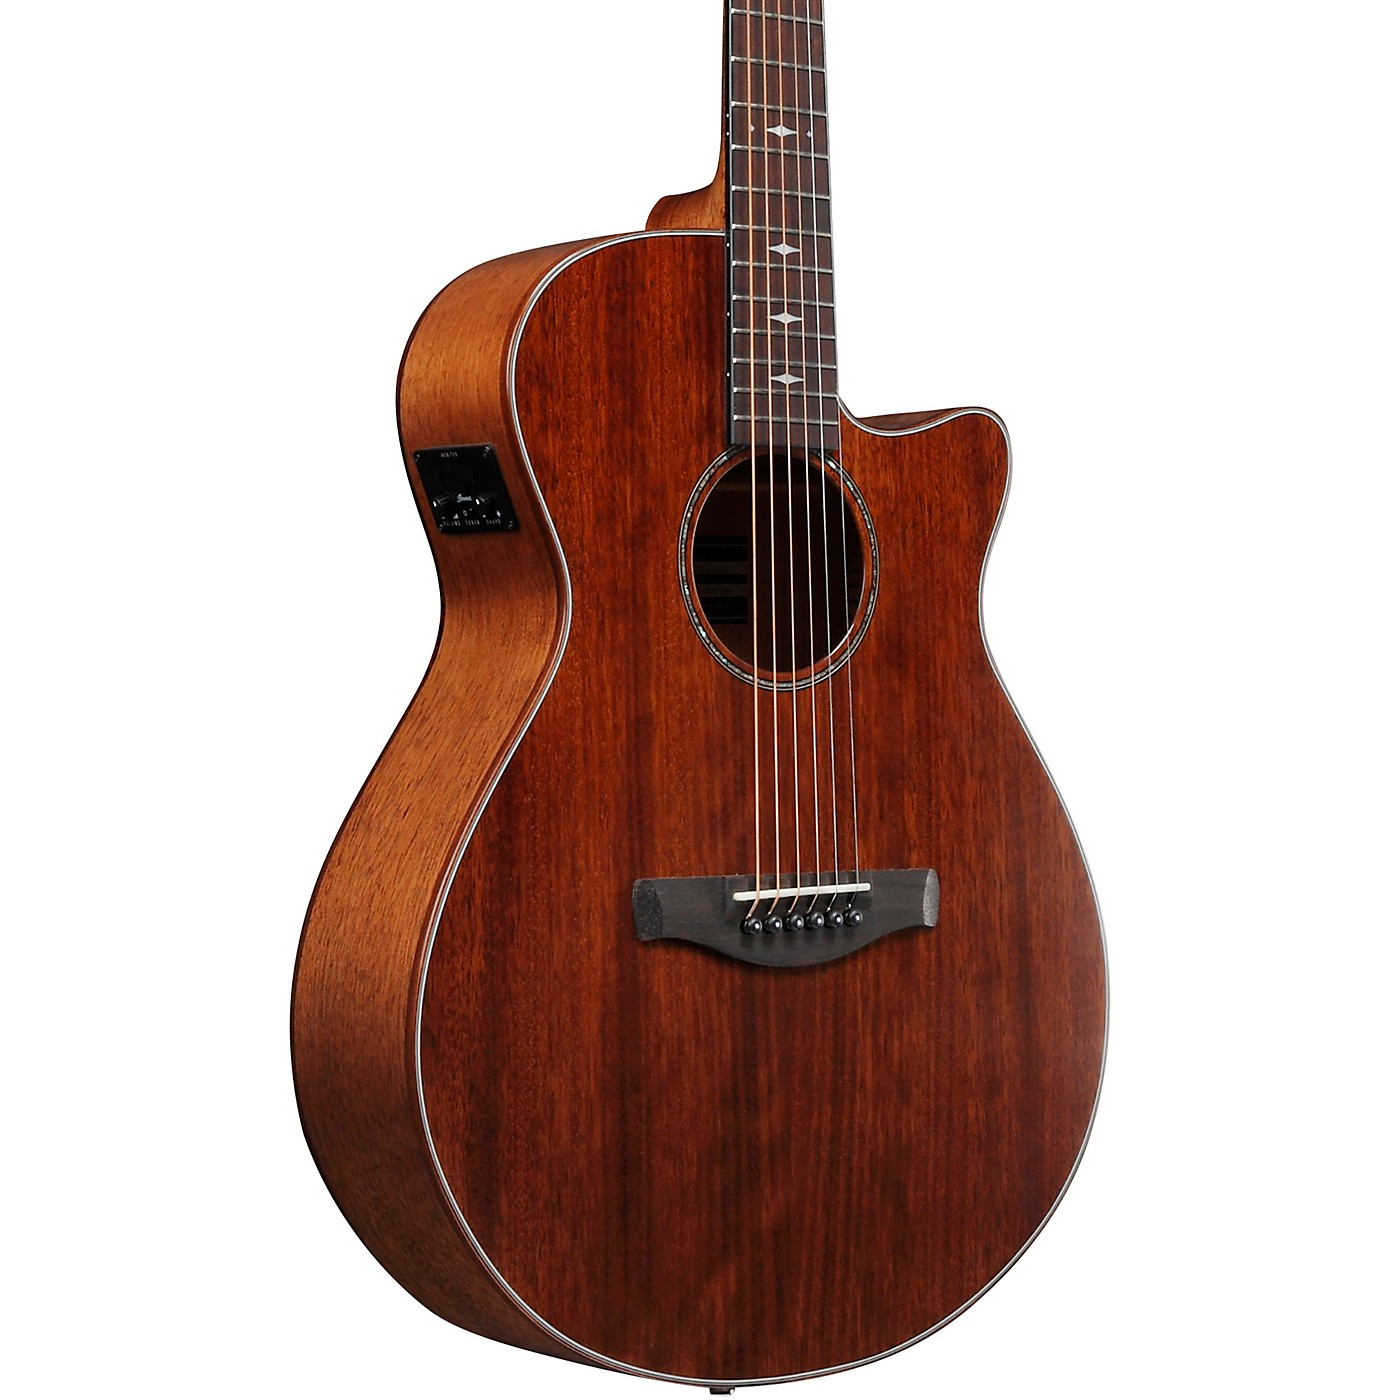 Ibanez AEG220 Solid Top Grand Concert Acoustic-Electric Guitar thumbnail